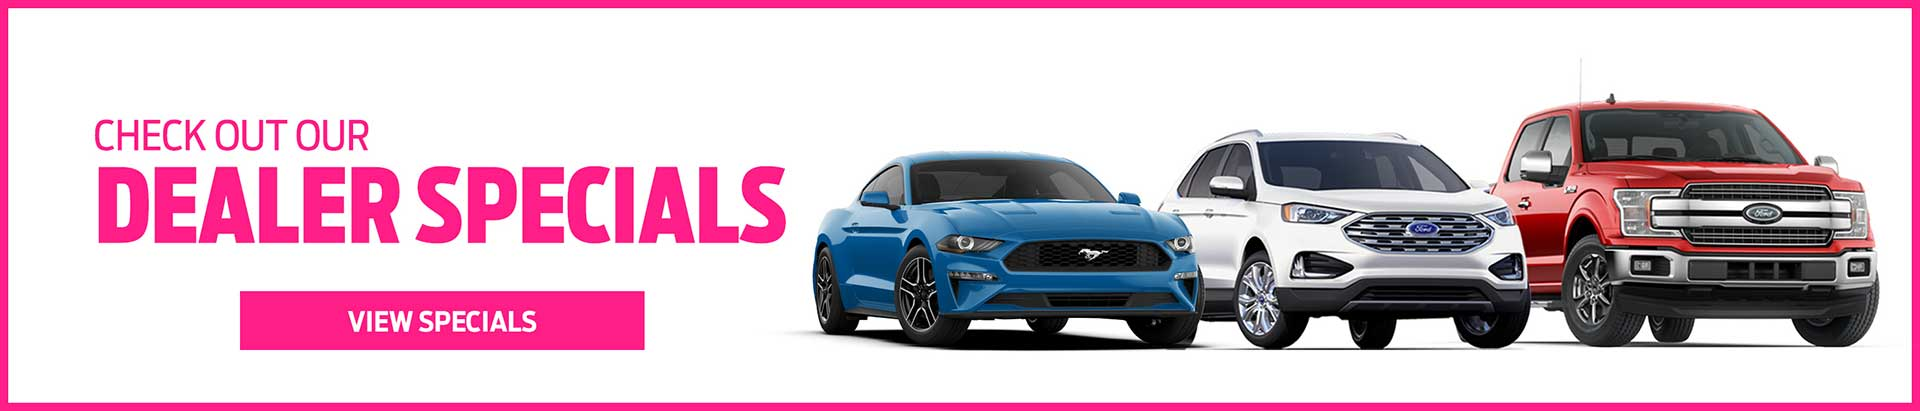 Tomball Ford Dealer Specials